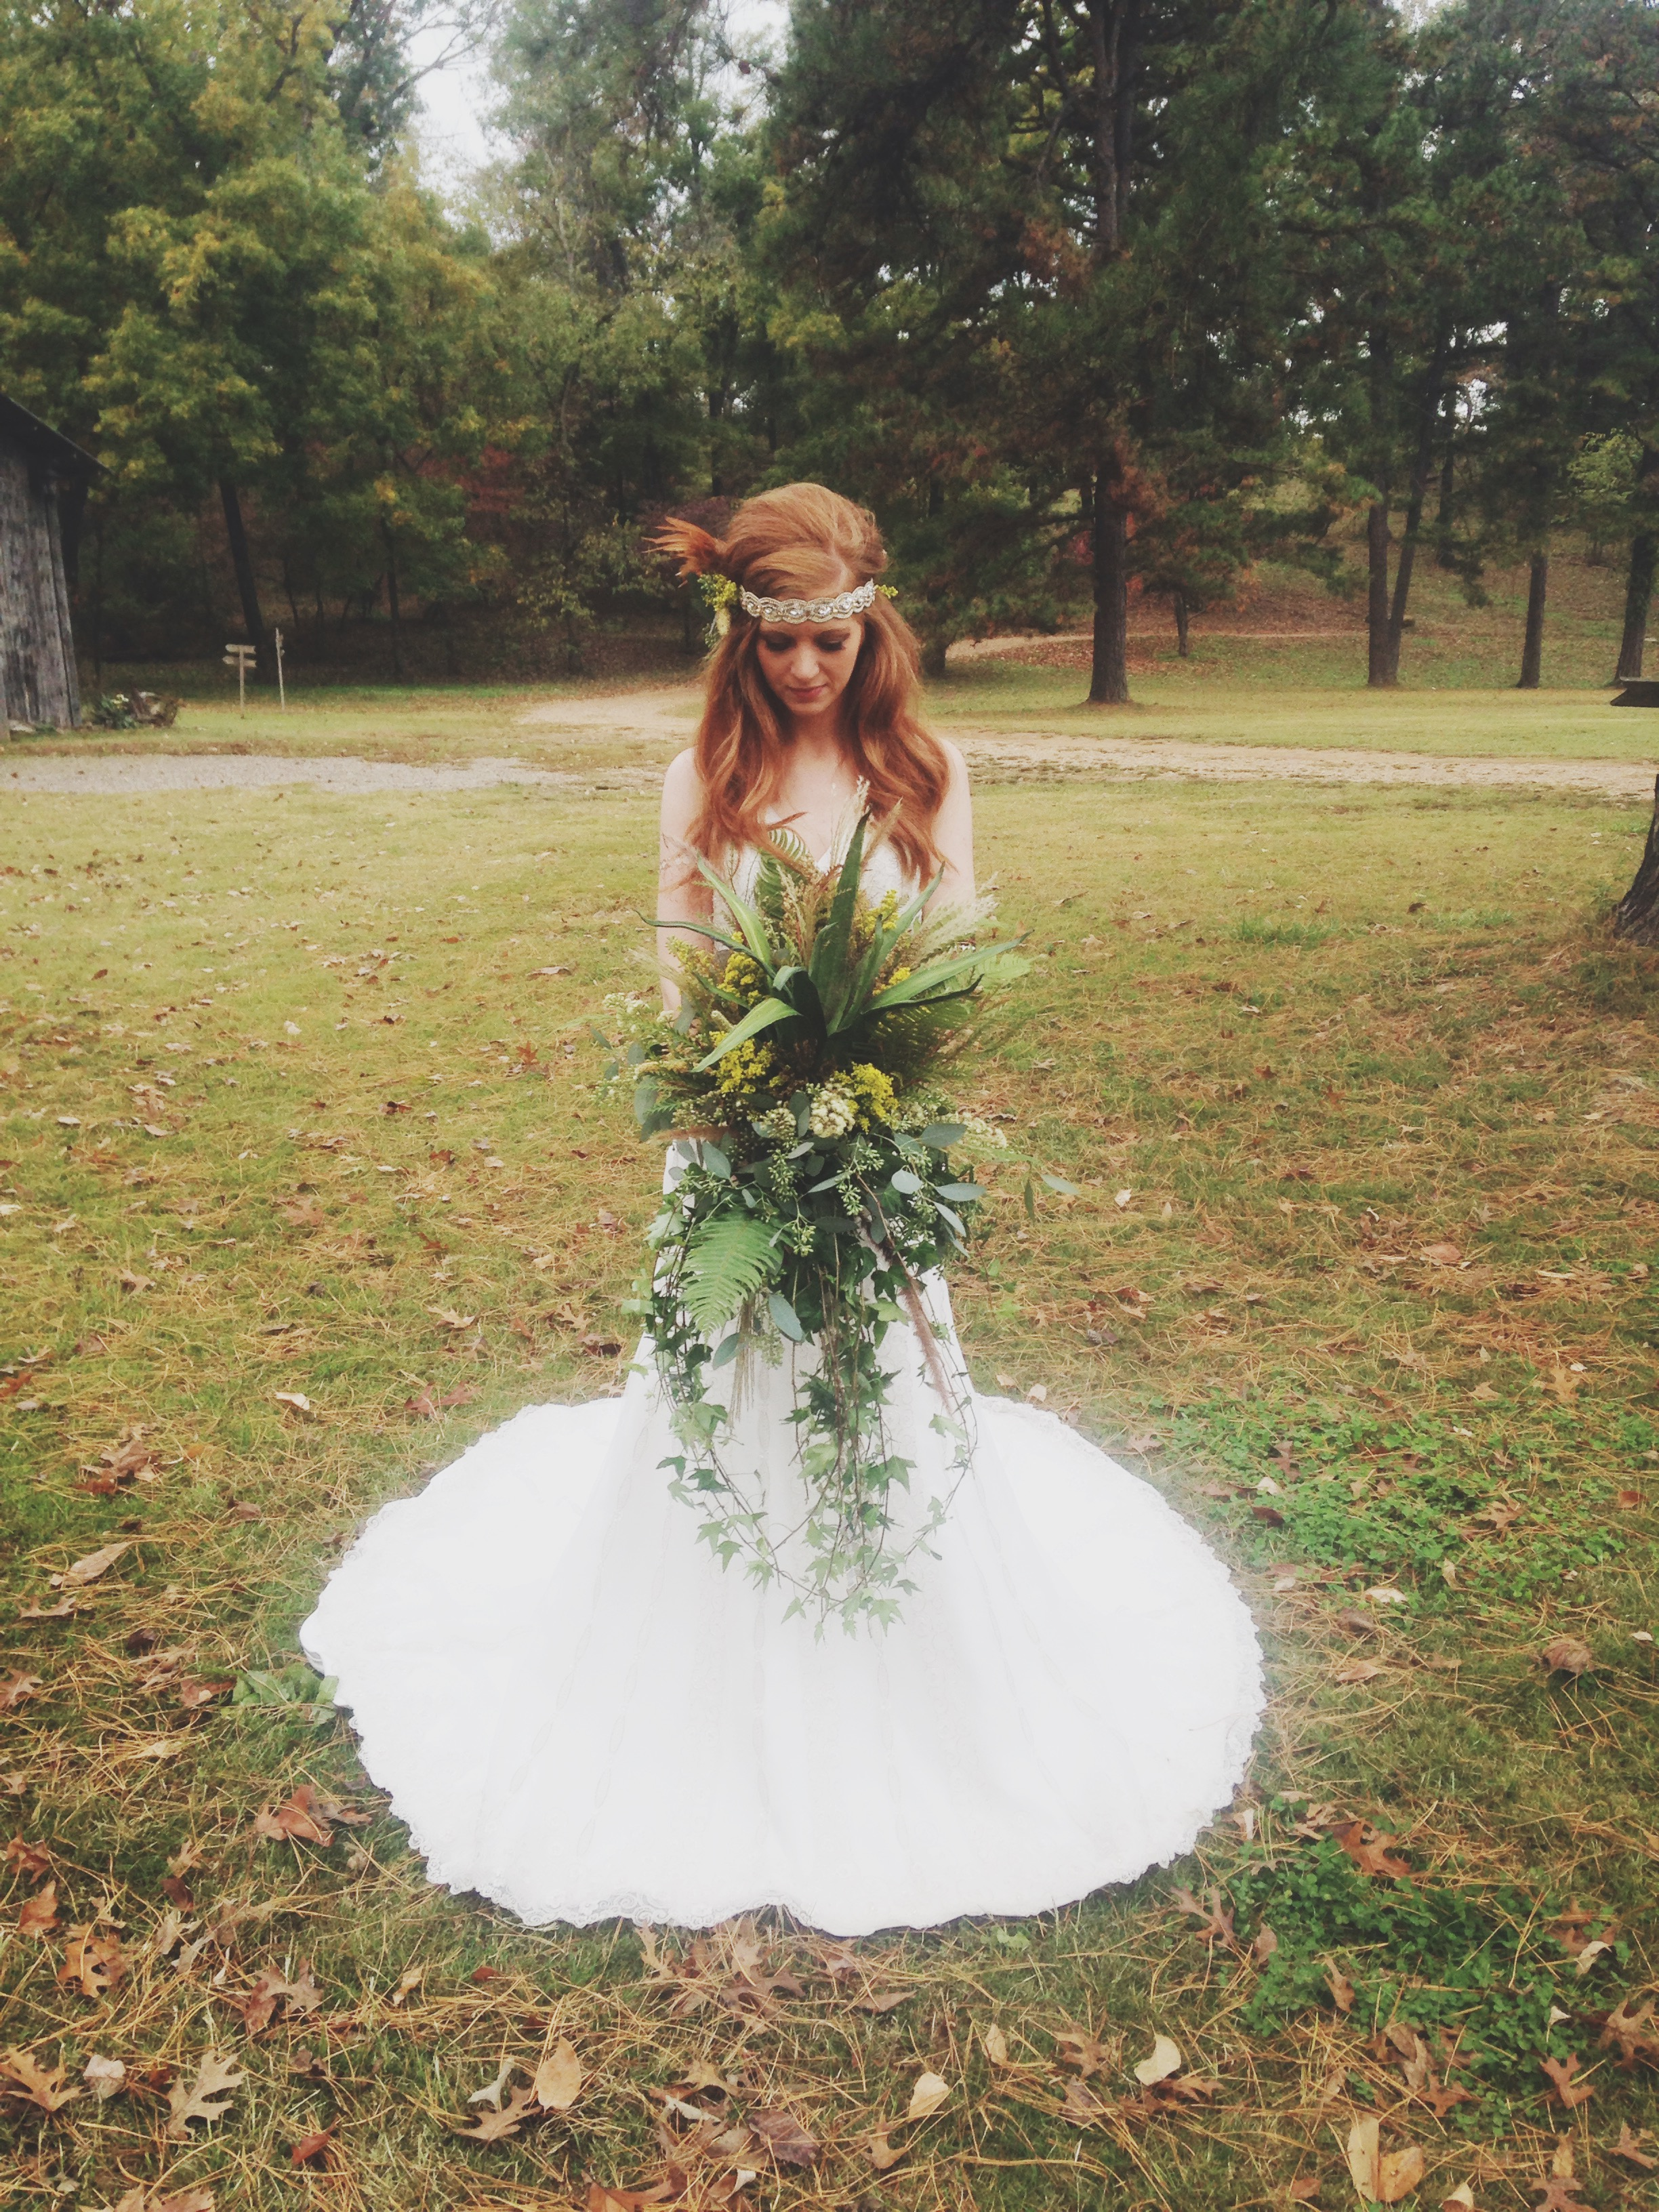 Our dresses for the shoot were from  Formal Affairs , and they were stunning. The bouquet, headpieces and all flower arrangements were made by our fabulous floral designer, Ginger.